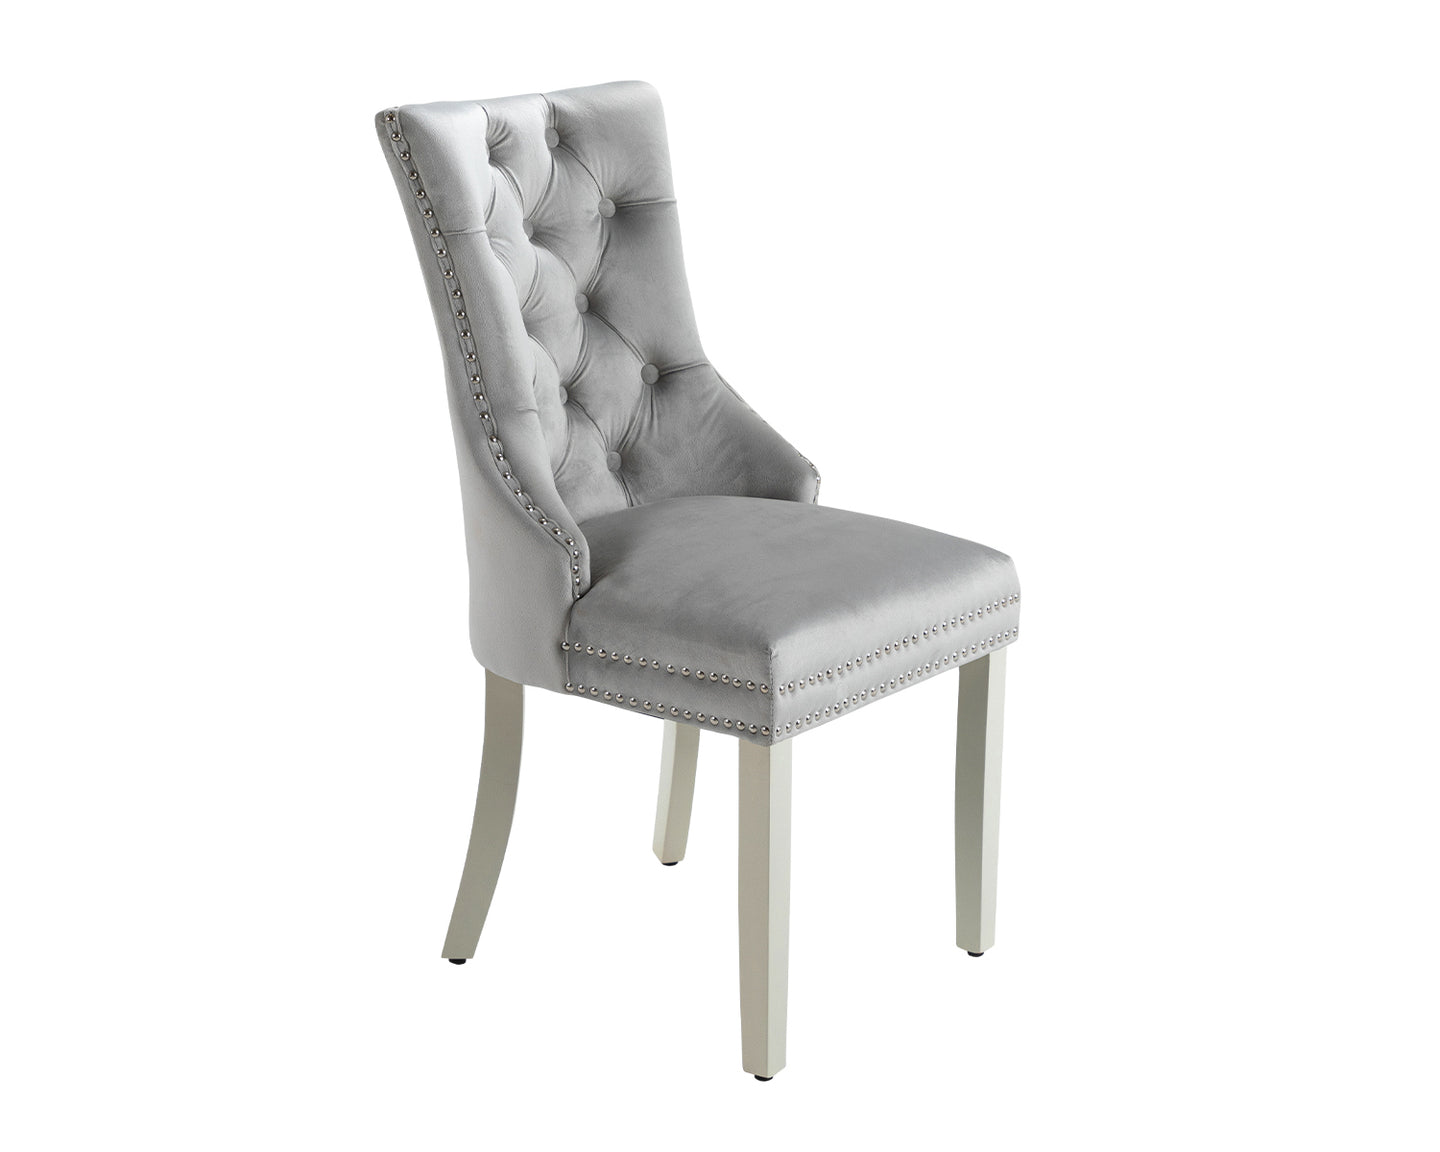 Ashford Dining Chair in Light Grey Velvet with Square Knocker And Grey Legs